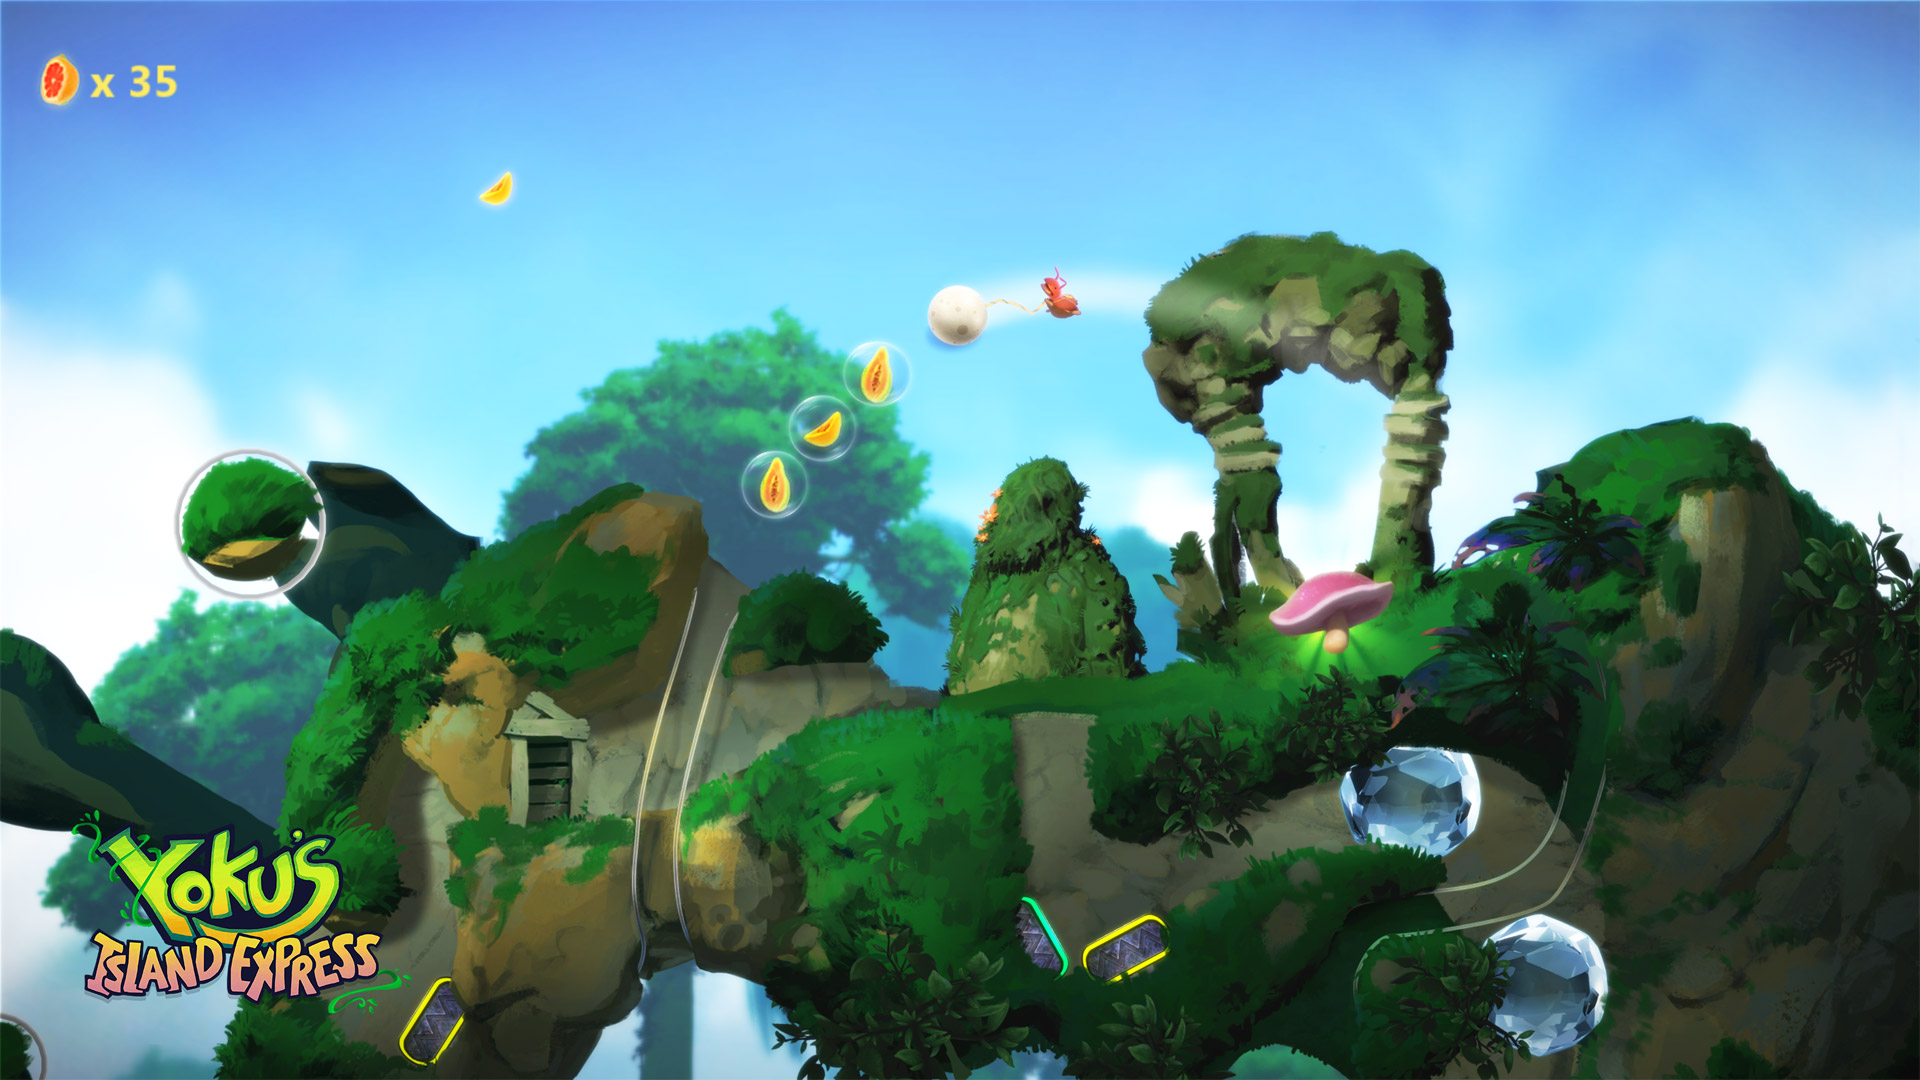 Yoku's Island Express Playstation 4 Screenshot